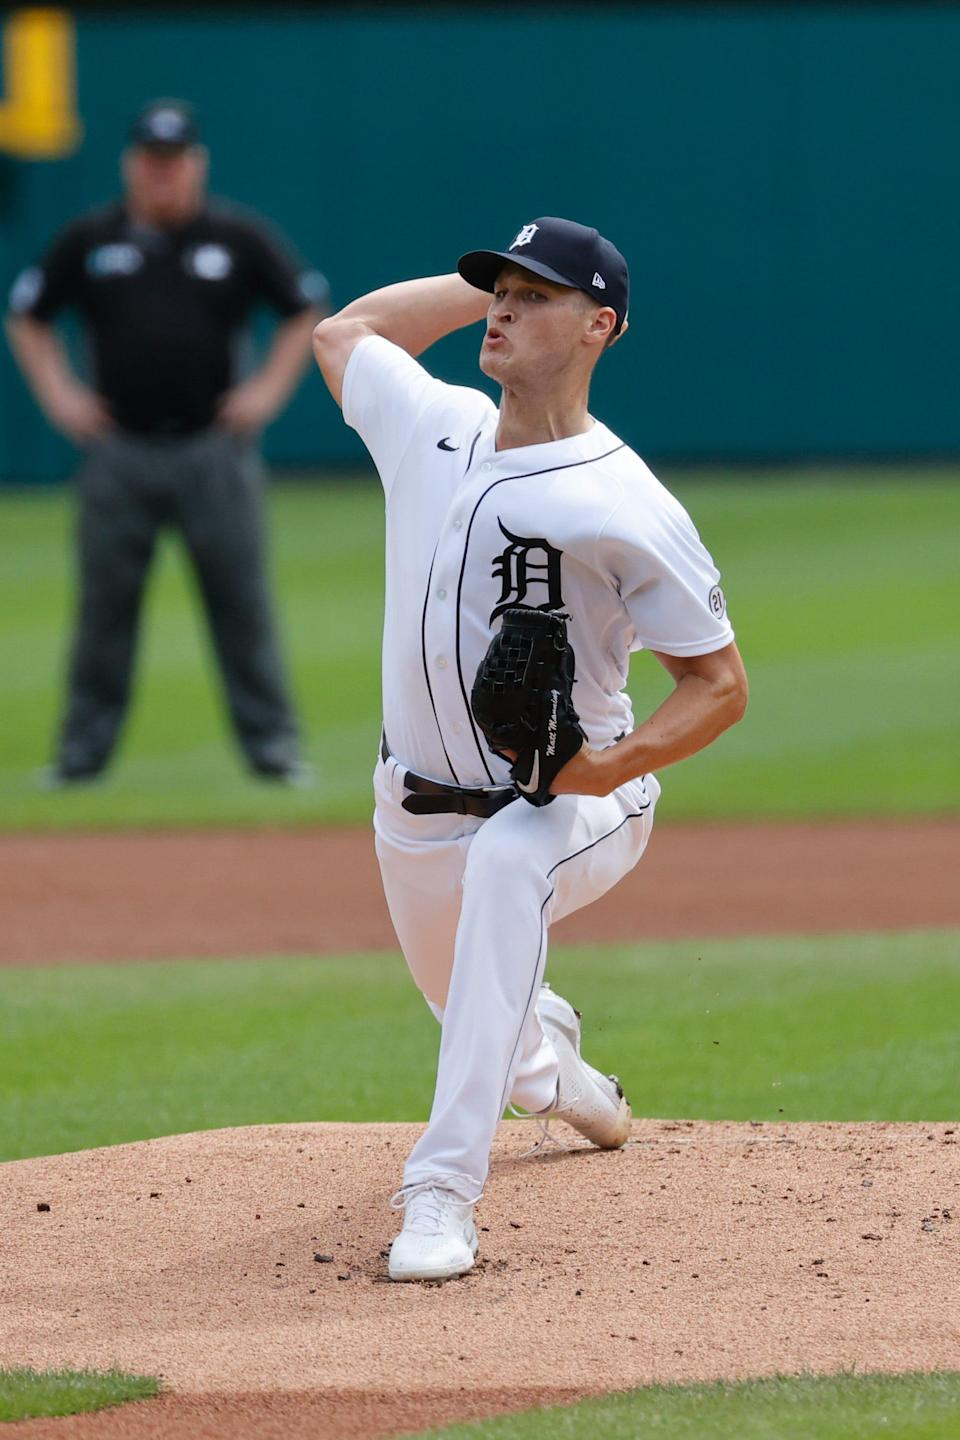 Detroit Tigers starting pitcher Matt Manning (25) pitches in the first inning against the Milwaukee Brewers at Comerica Park on Wednesday, Sept. 15, 2021.